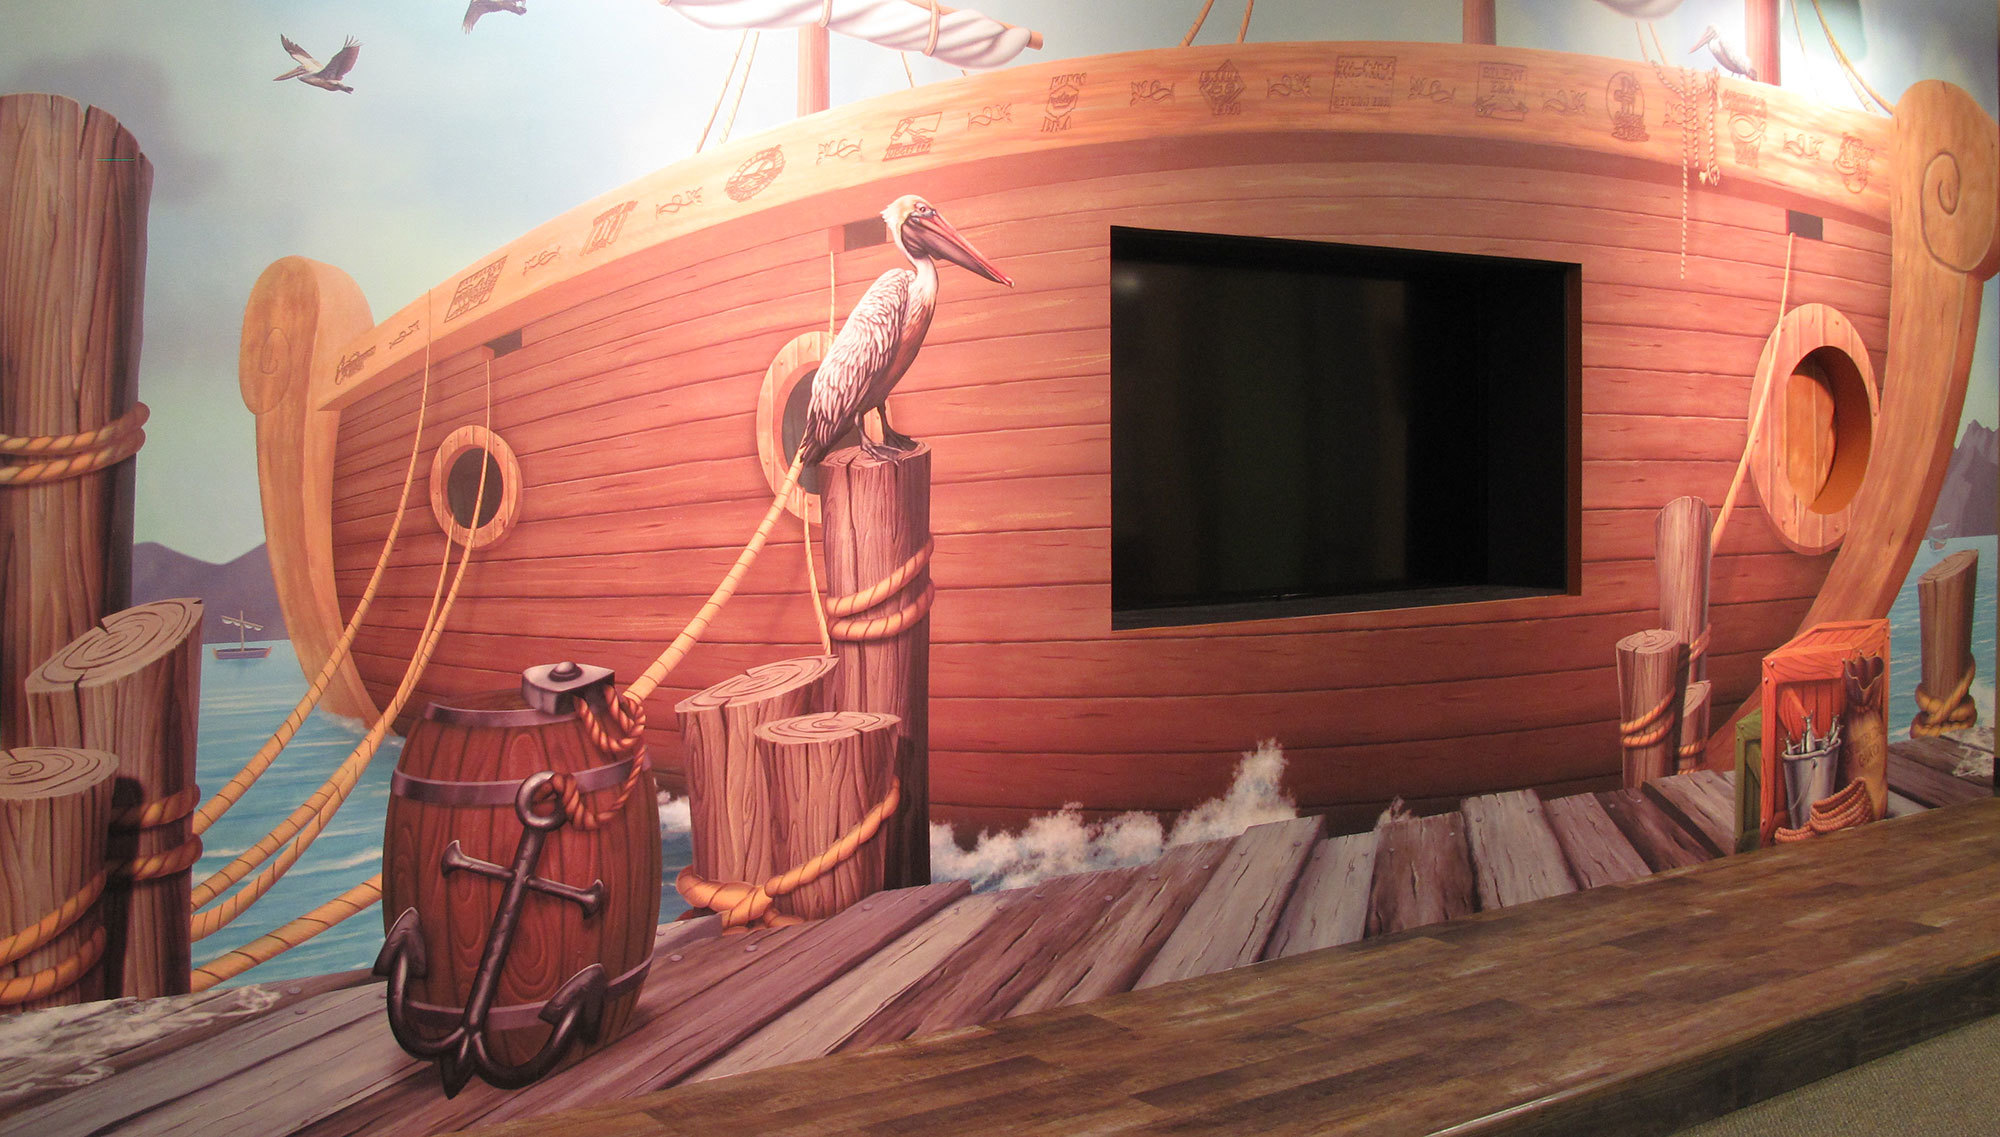 Shipping Dock Themed Wall Covering Stage Backdrop at Stonebridge Church